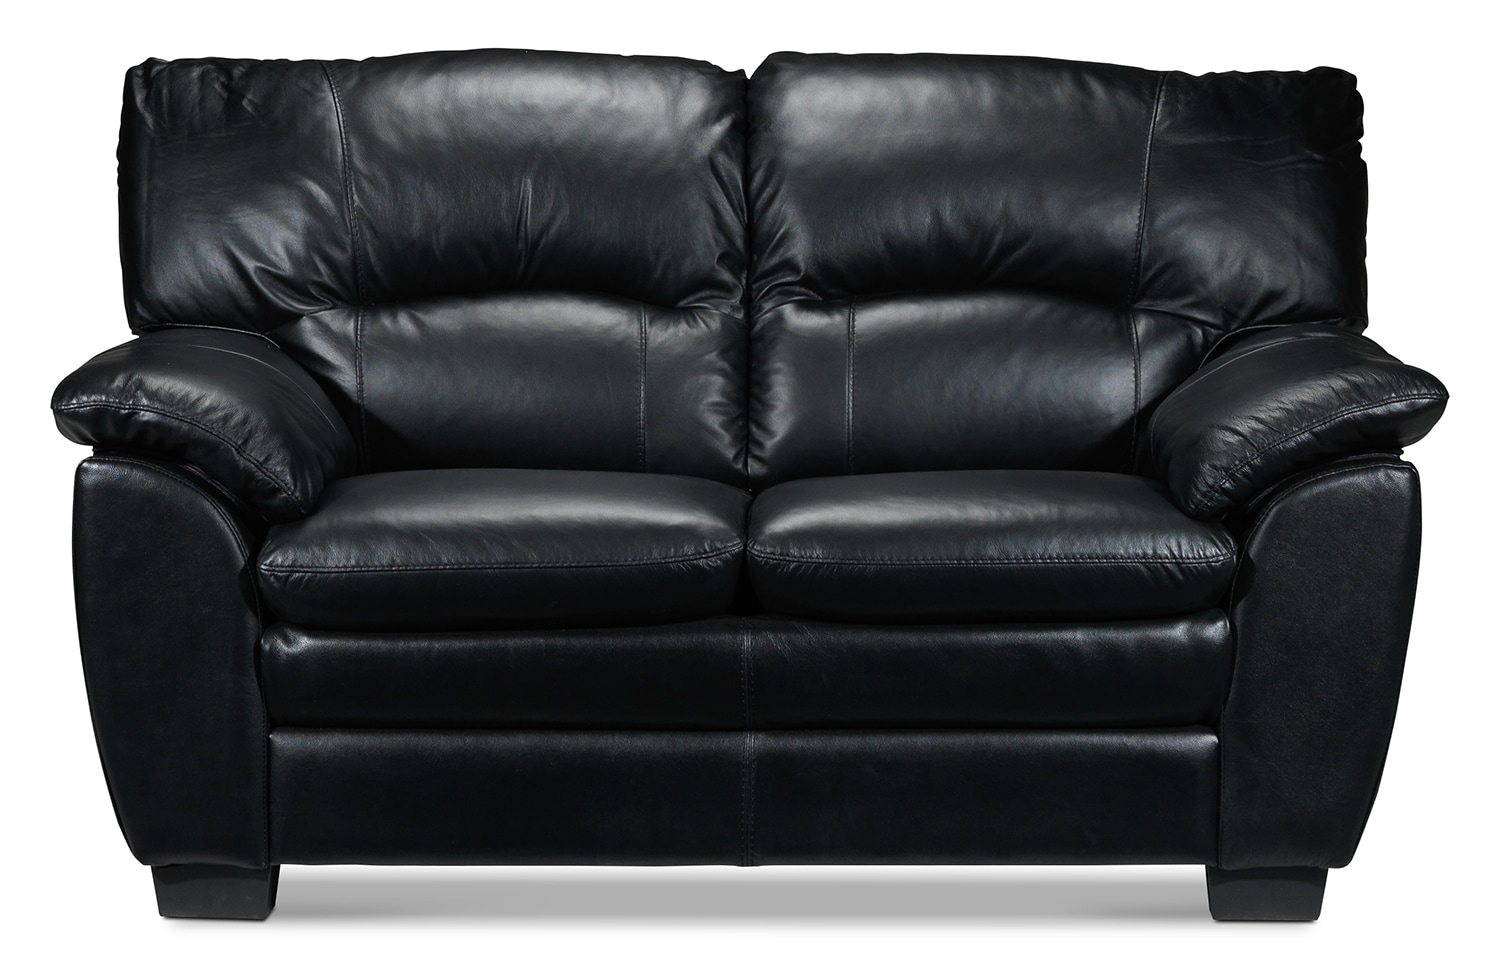 Rodero Loveseat - Black